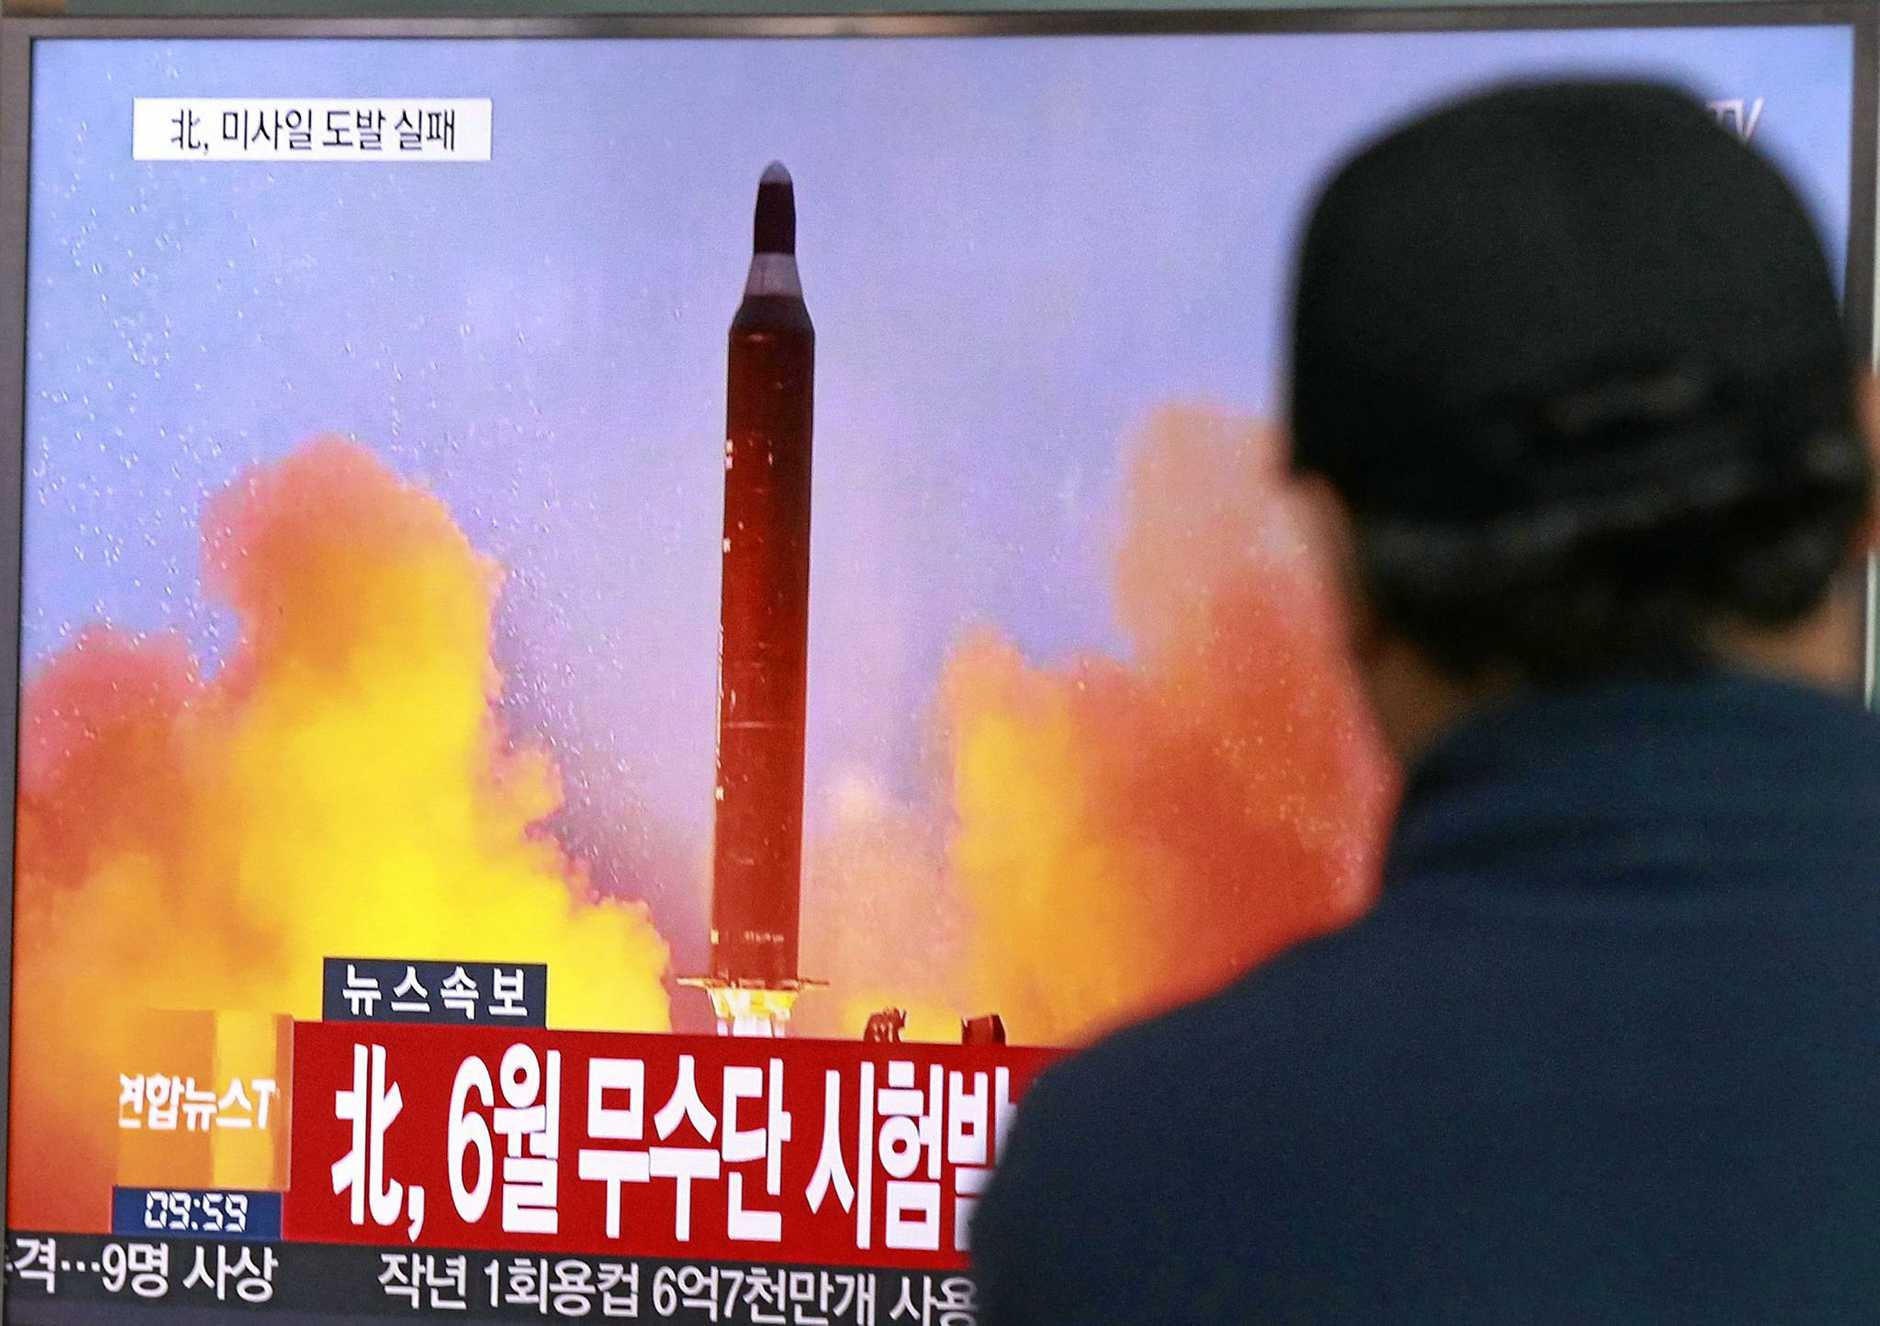 On October 16 last year, a man watches a TV news program showing a file image of a missile launch conducted by North Korea, at the Seoul Railway Station in Seoul, South Korea.